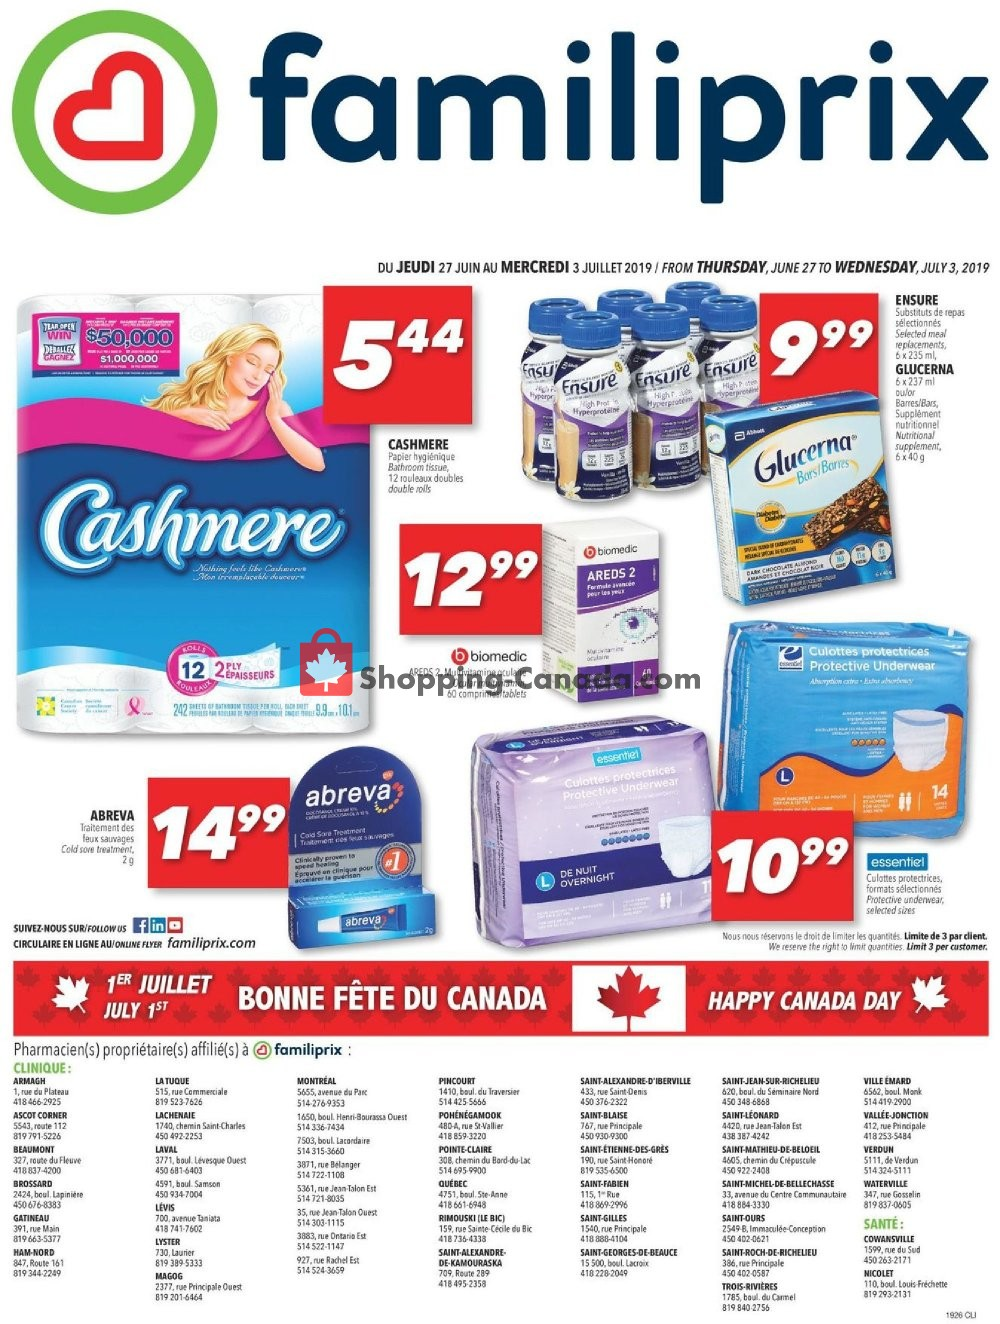 Flyer Familiprix Canada - from Thursday June 27, 2019 to Wednesday July 3, 2019